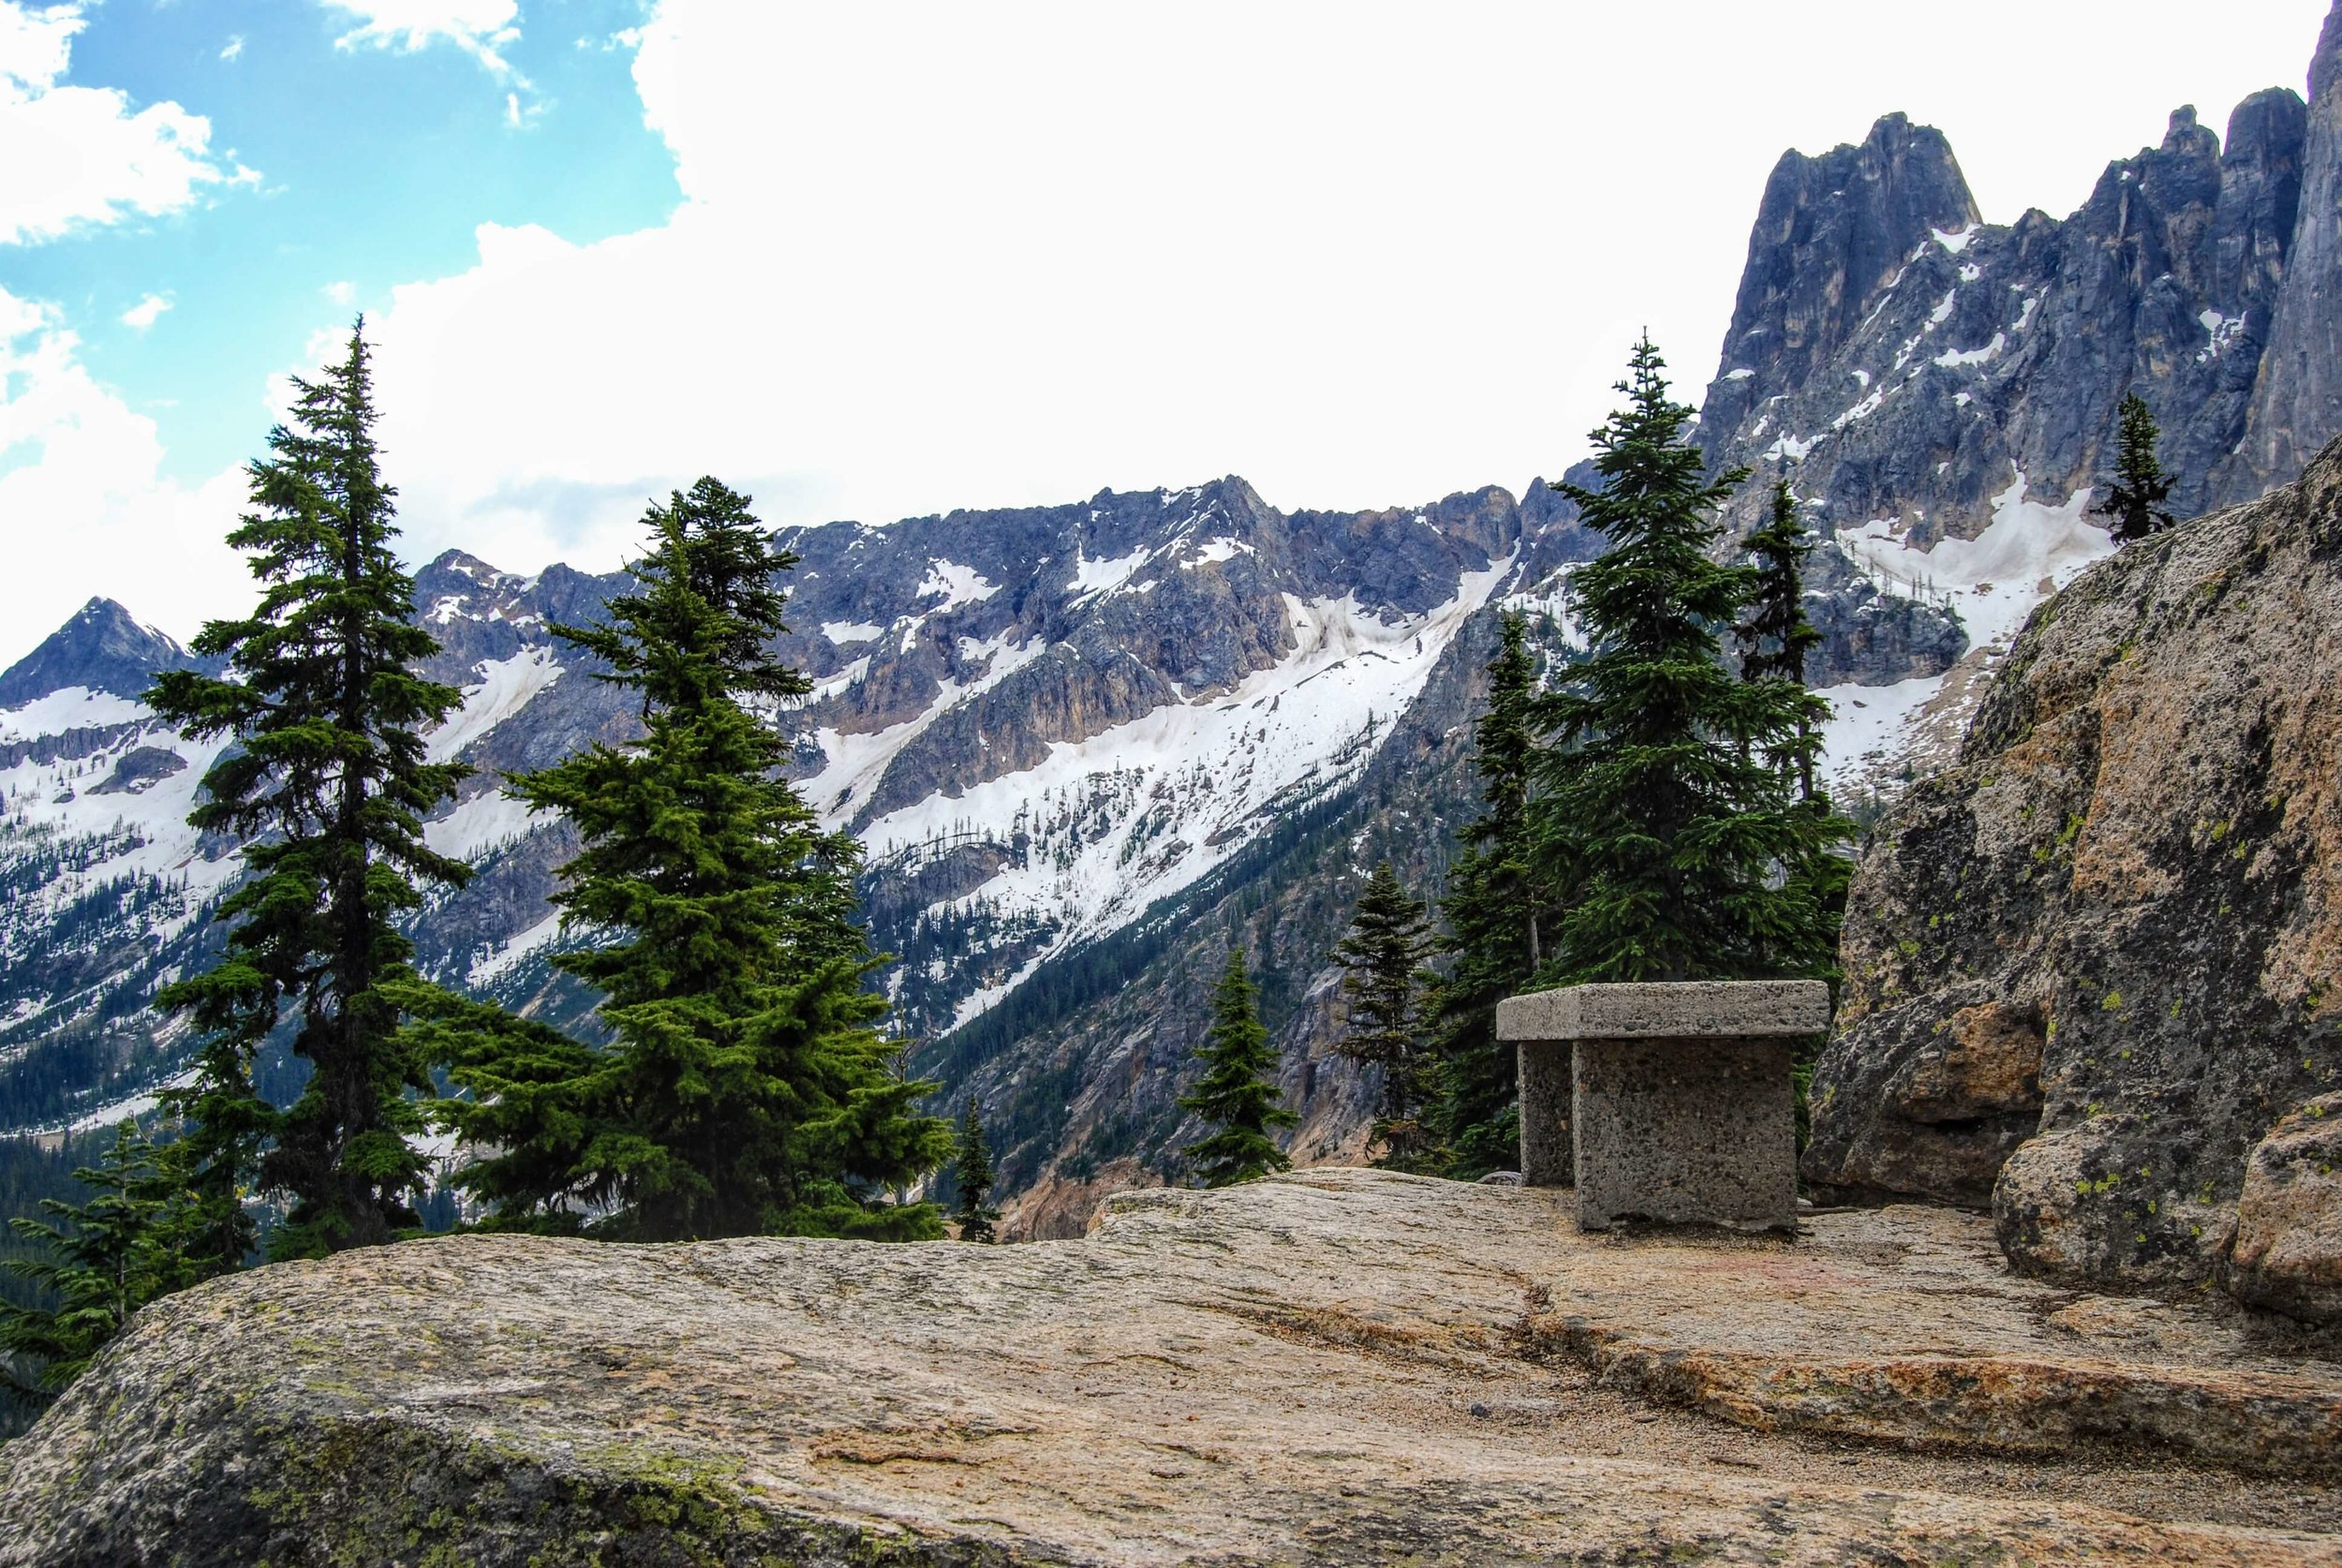 A seat with a view of the stunning scenery at Washington Pass